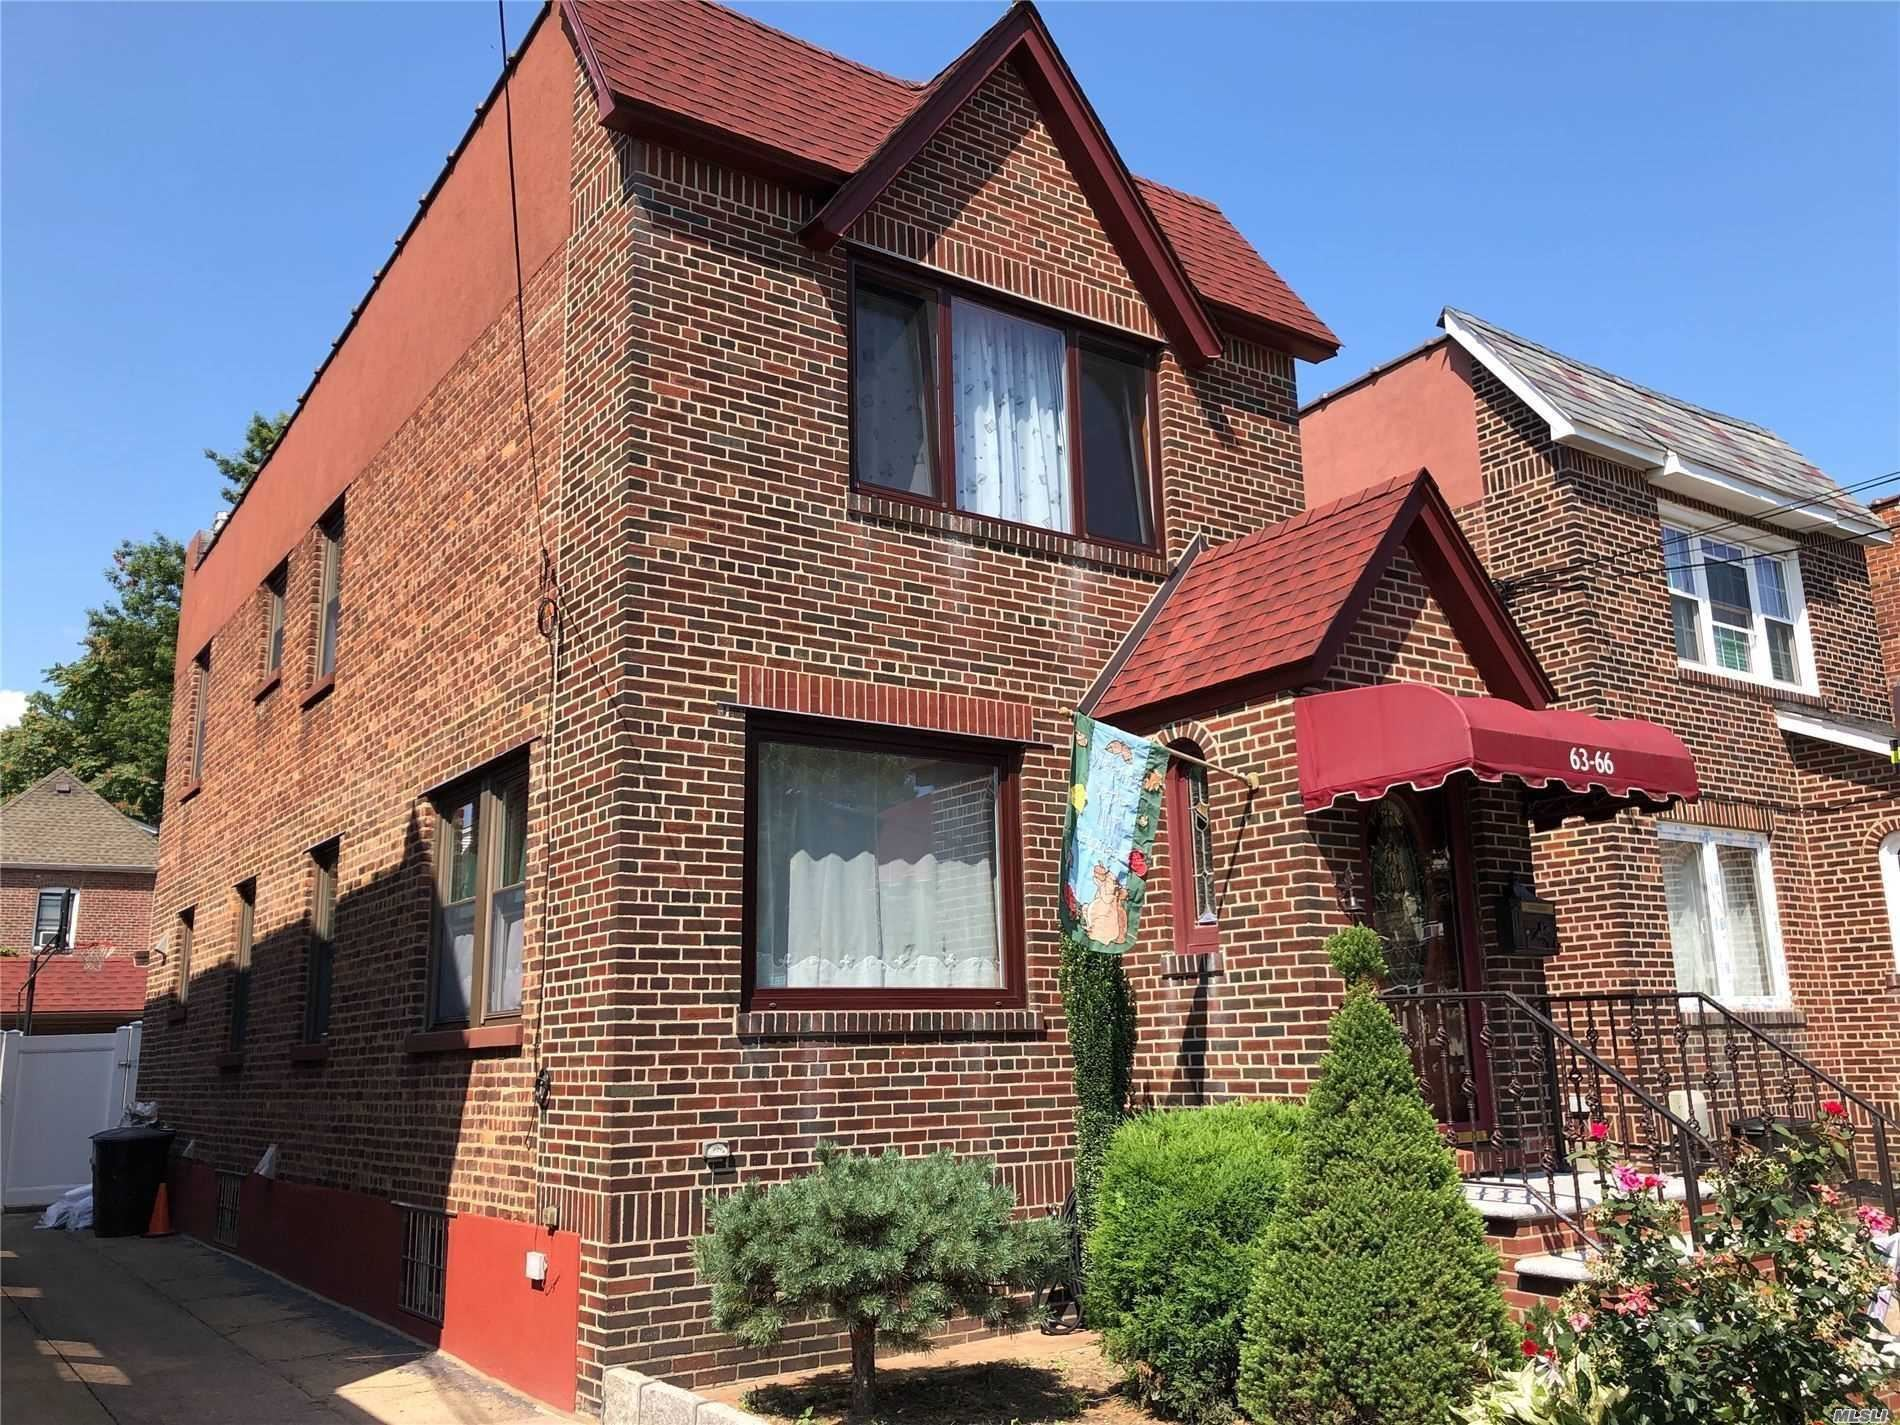 63-66 84 Place, Middle Village, NY 11379 - MLS#: 3196015